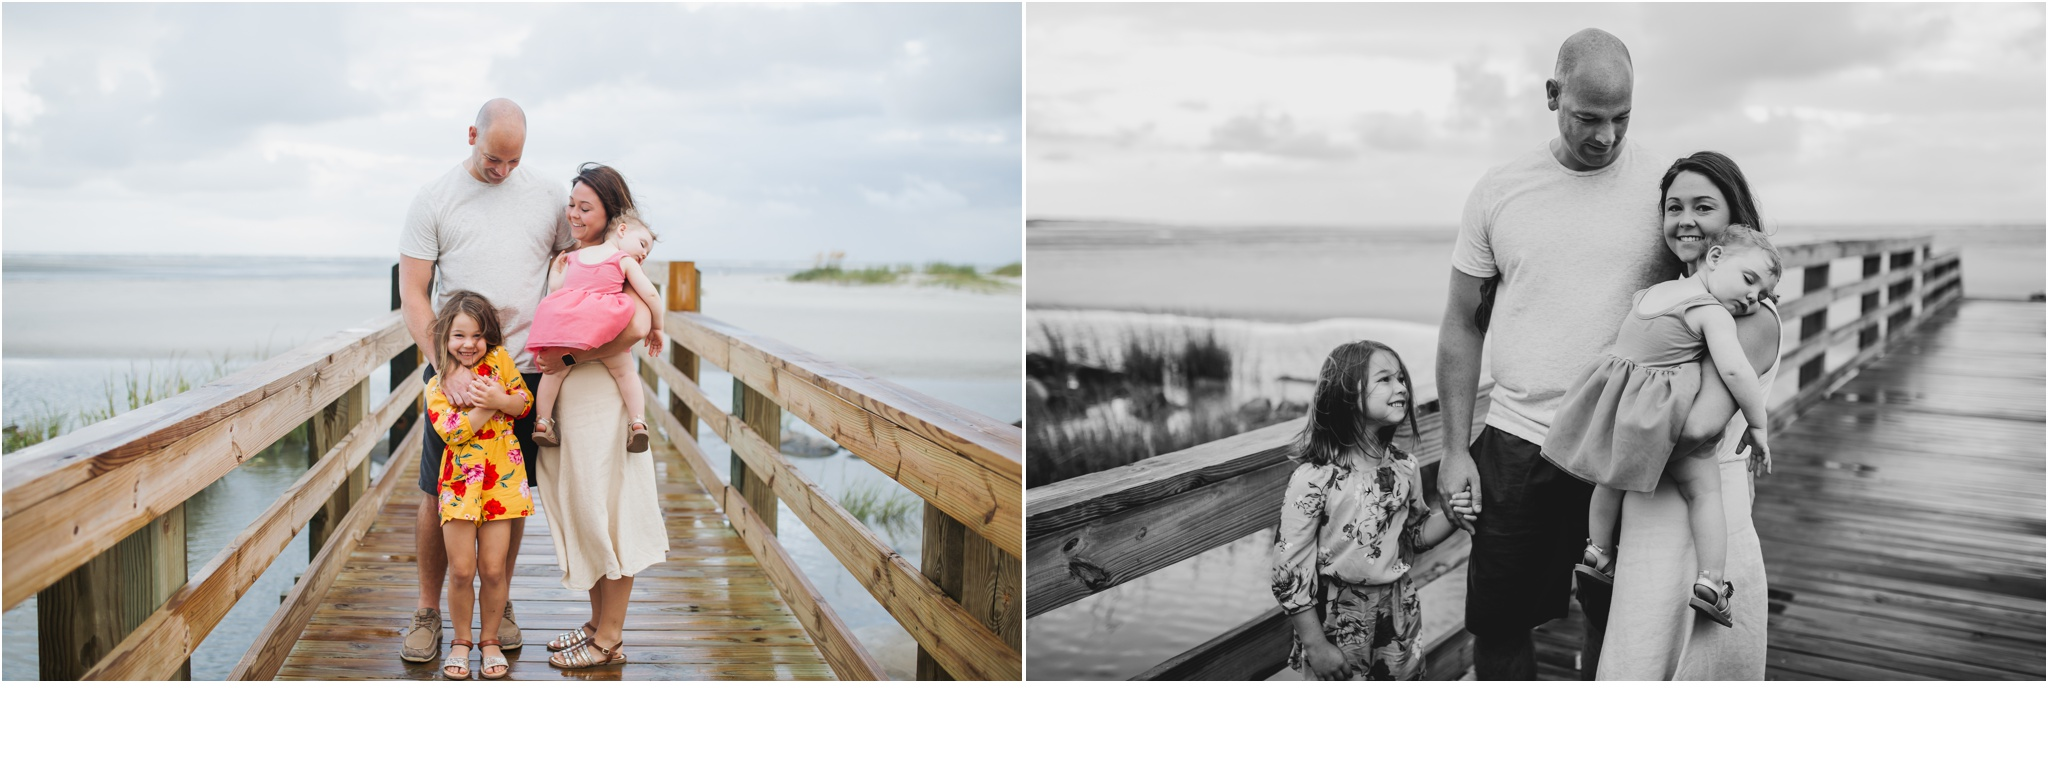 Rainey_Gregg_Photography_St._Simons_Island_Georgia_California_Wedding_Portrait_Photography_1389.jpg